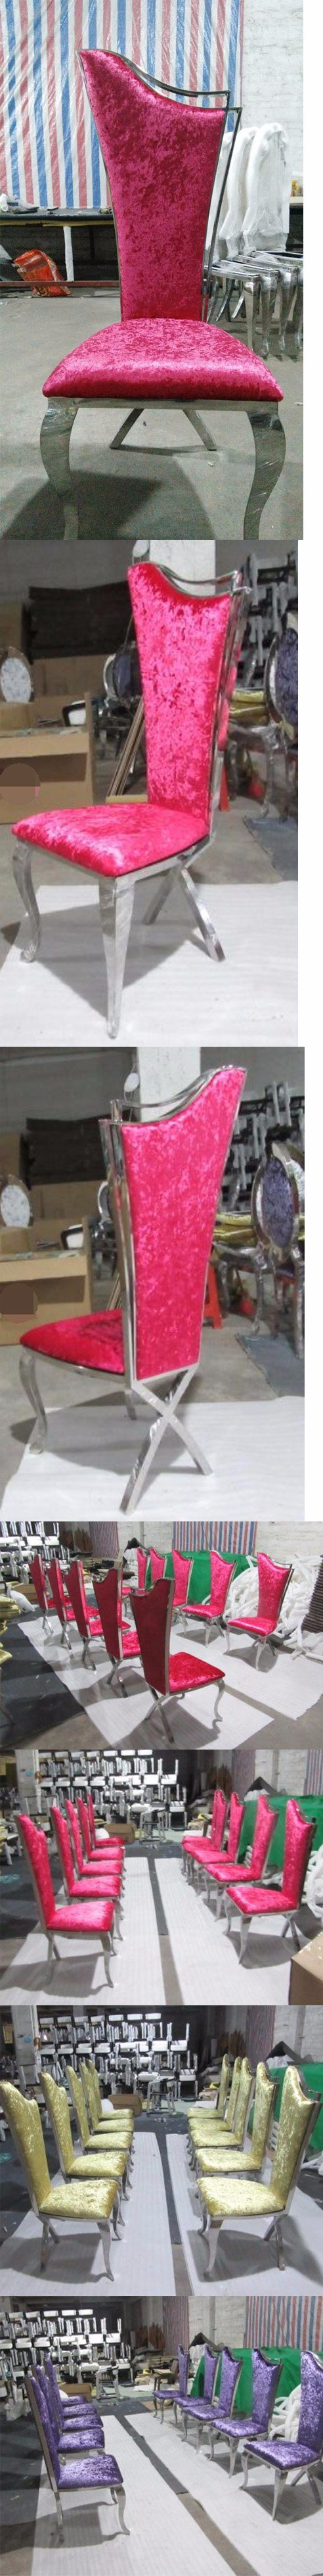 Luxury Dining Room Furniture Stainless Steel Furniture Dining Chair Wedding Chair Banquet Chair Hotel Chair